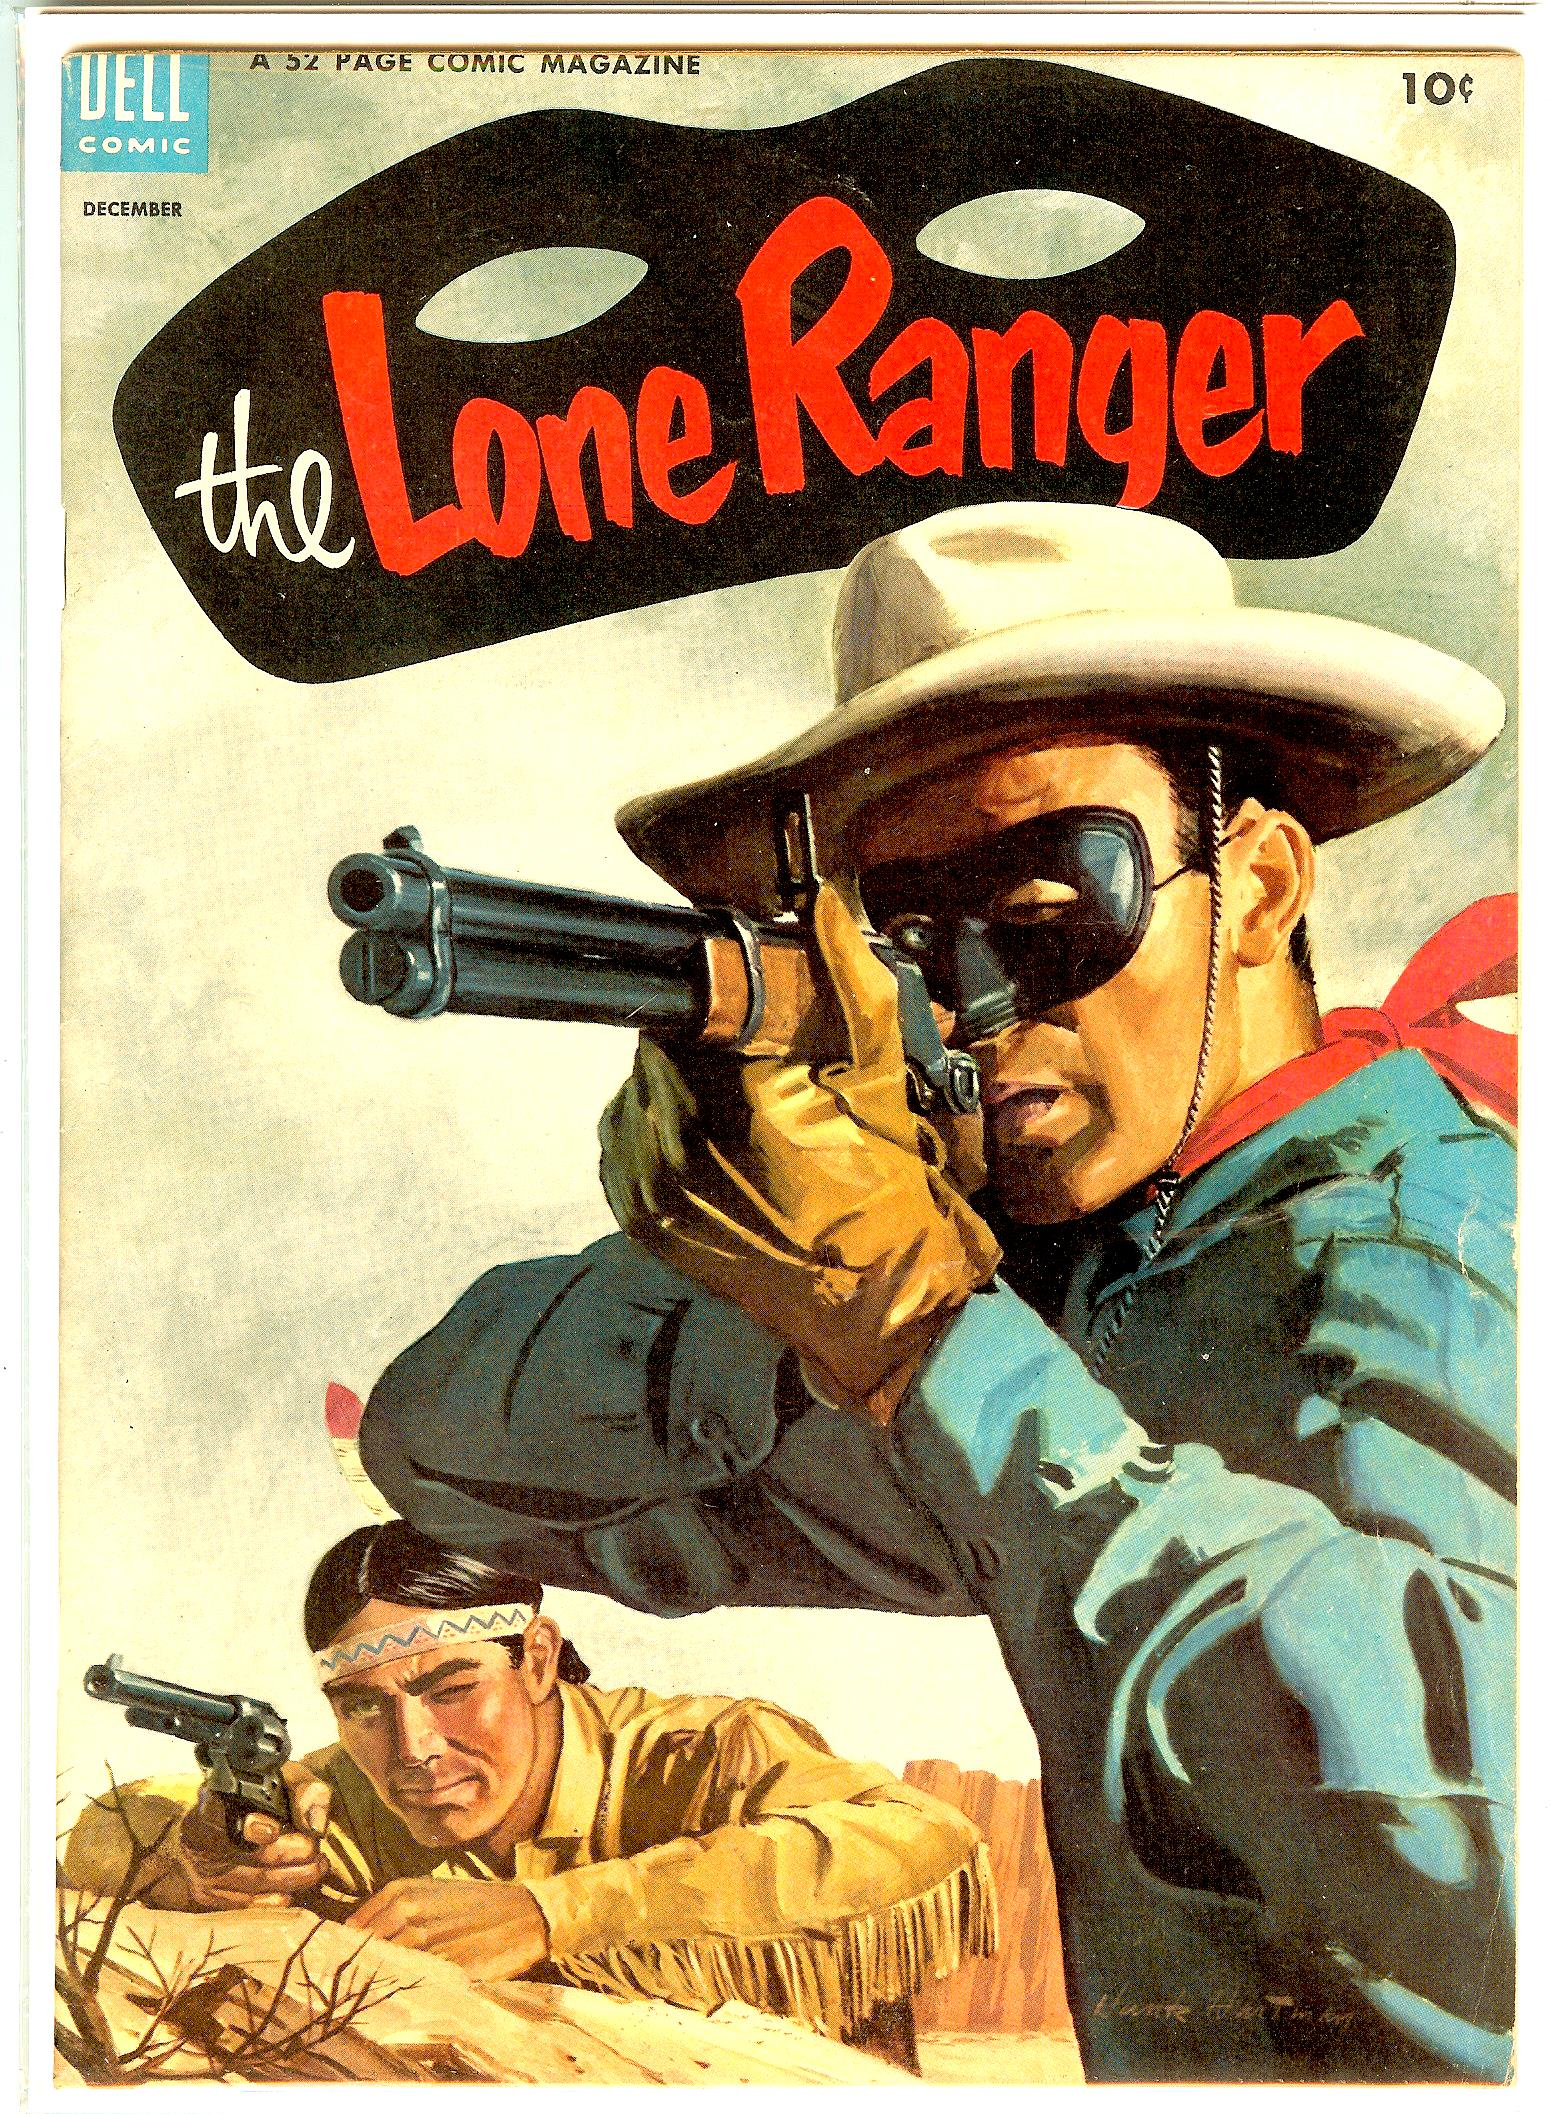 lone ranger paper finished copy